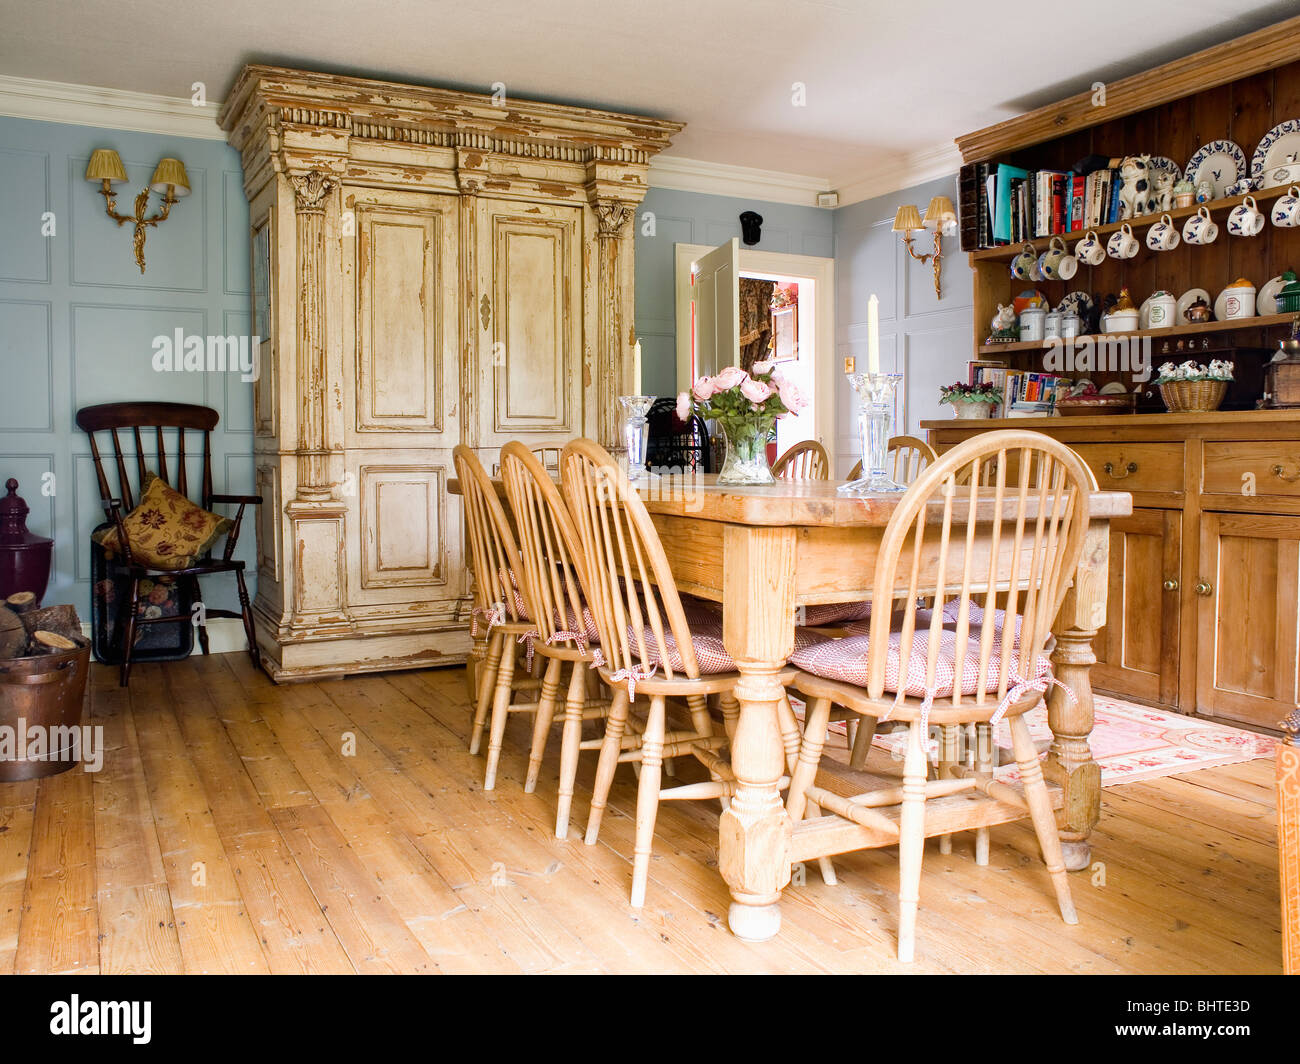 https://c8.alamy.com/comp/BHTE3D/wheel-back-chairs-and-pine-table-in-country-dining-room-with-large-BHTE3D.jpg